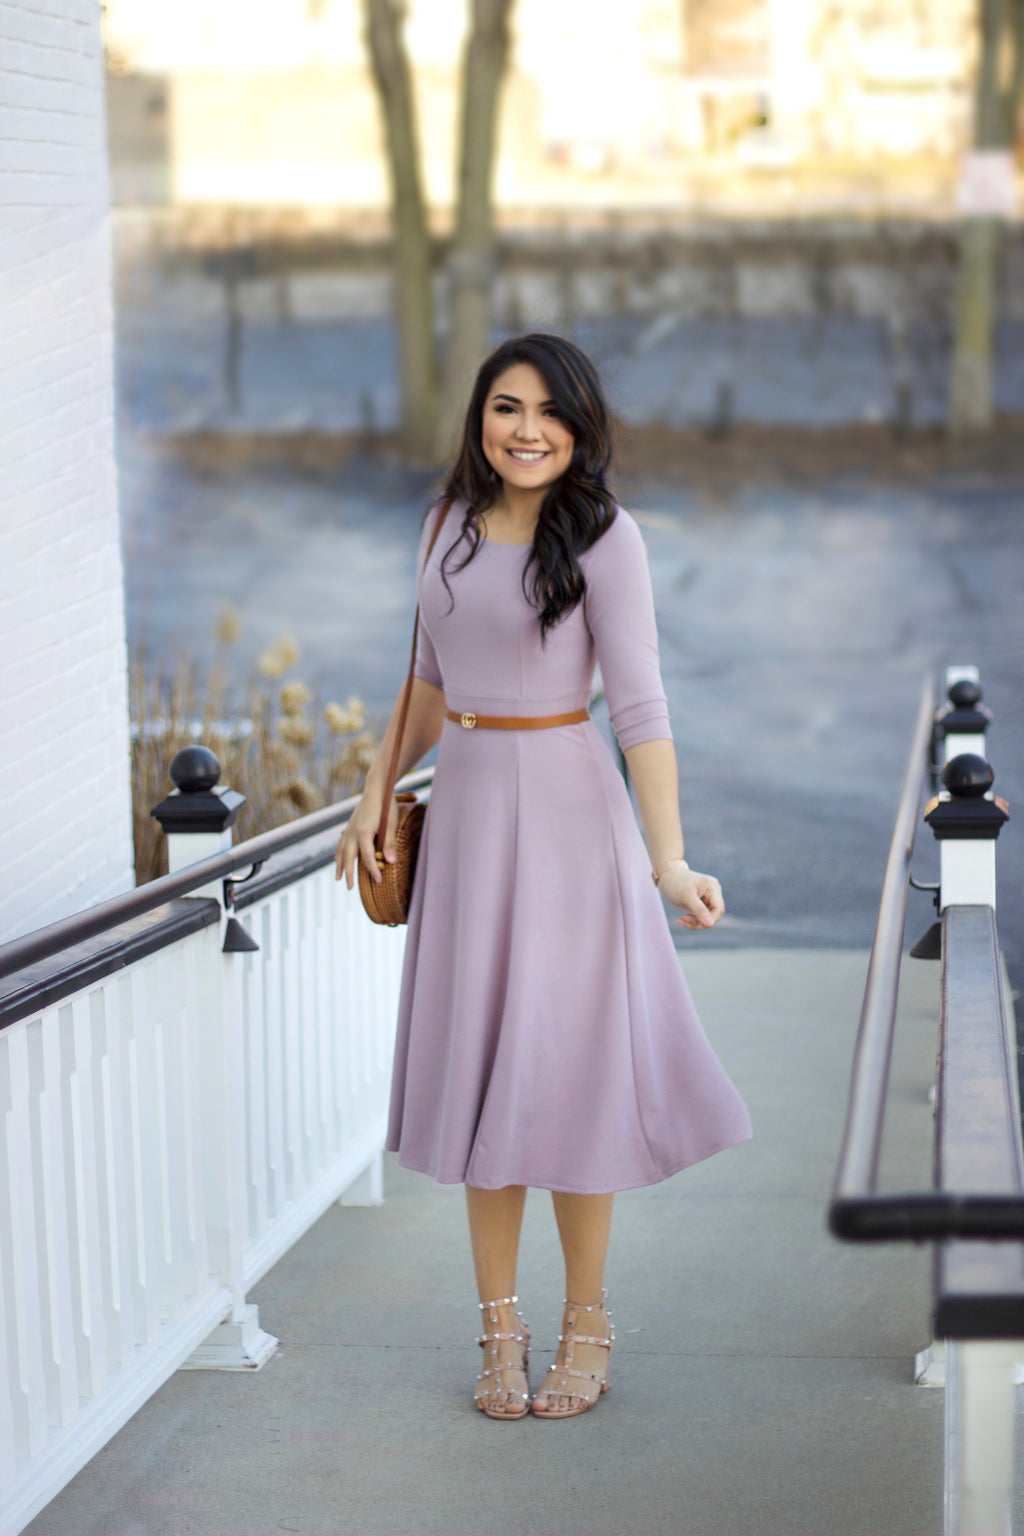 The Chloe Dress - In Lilac - The Darling Style - Modest Dresses